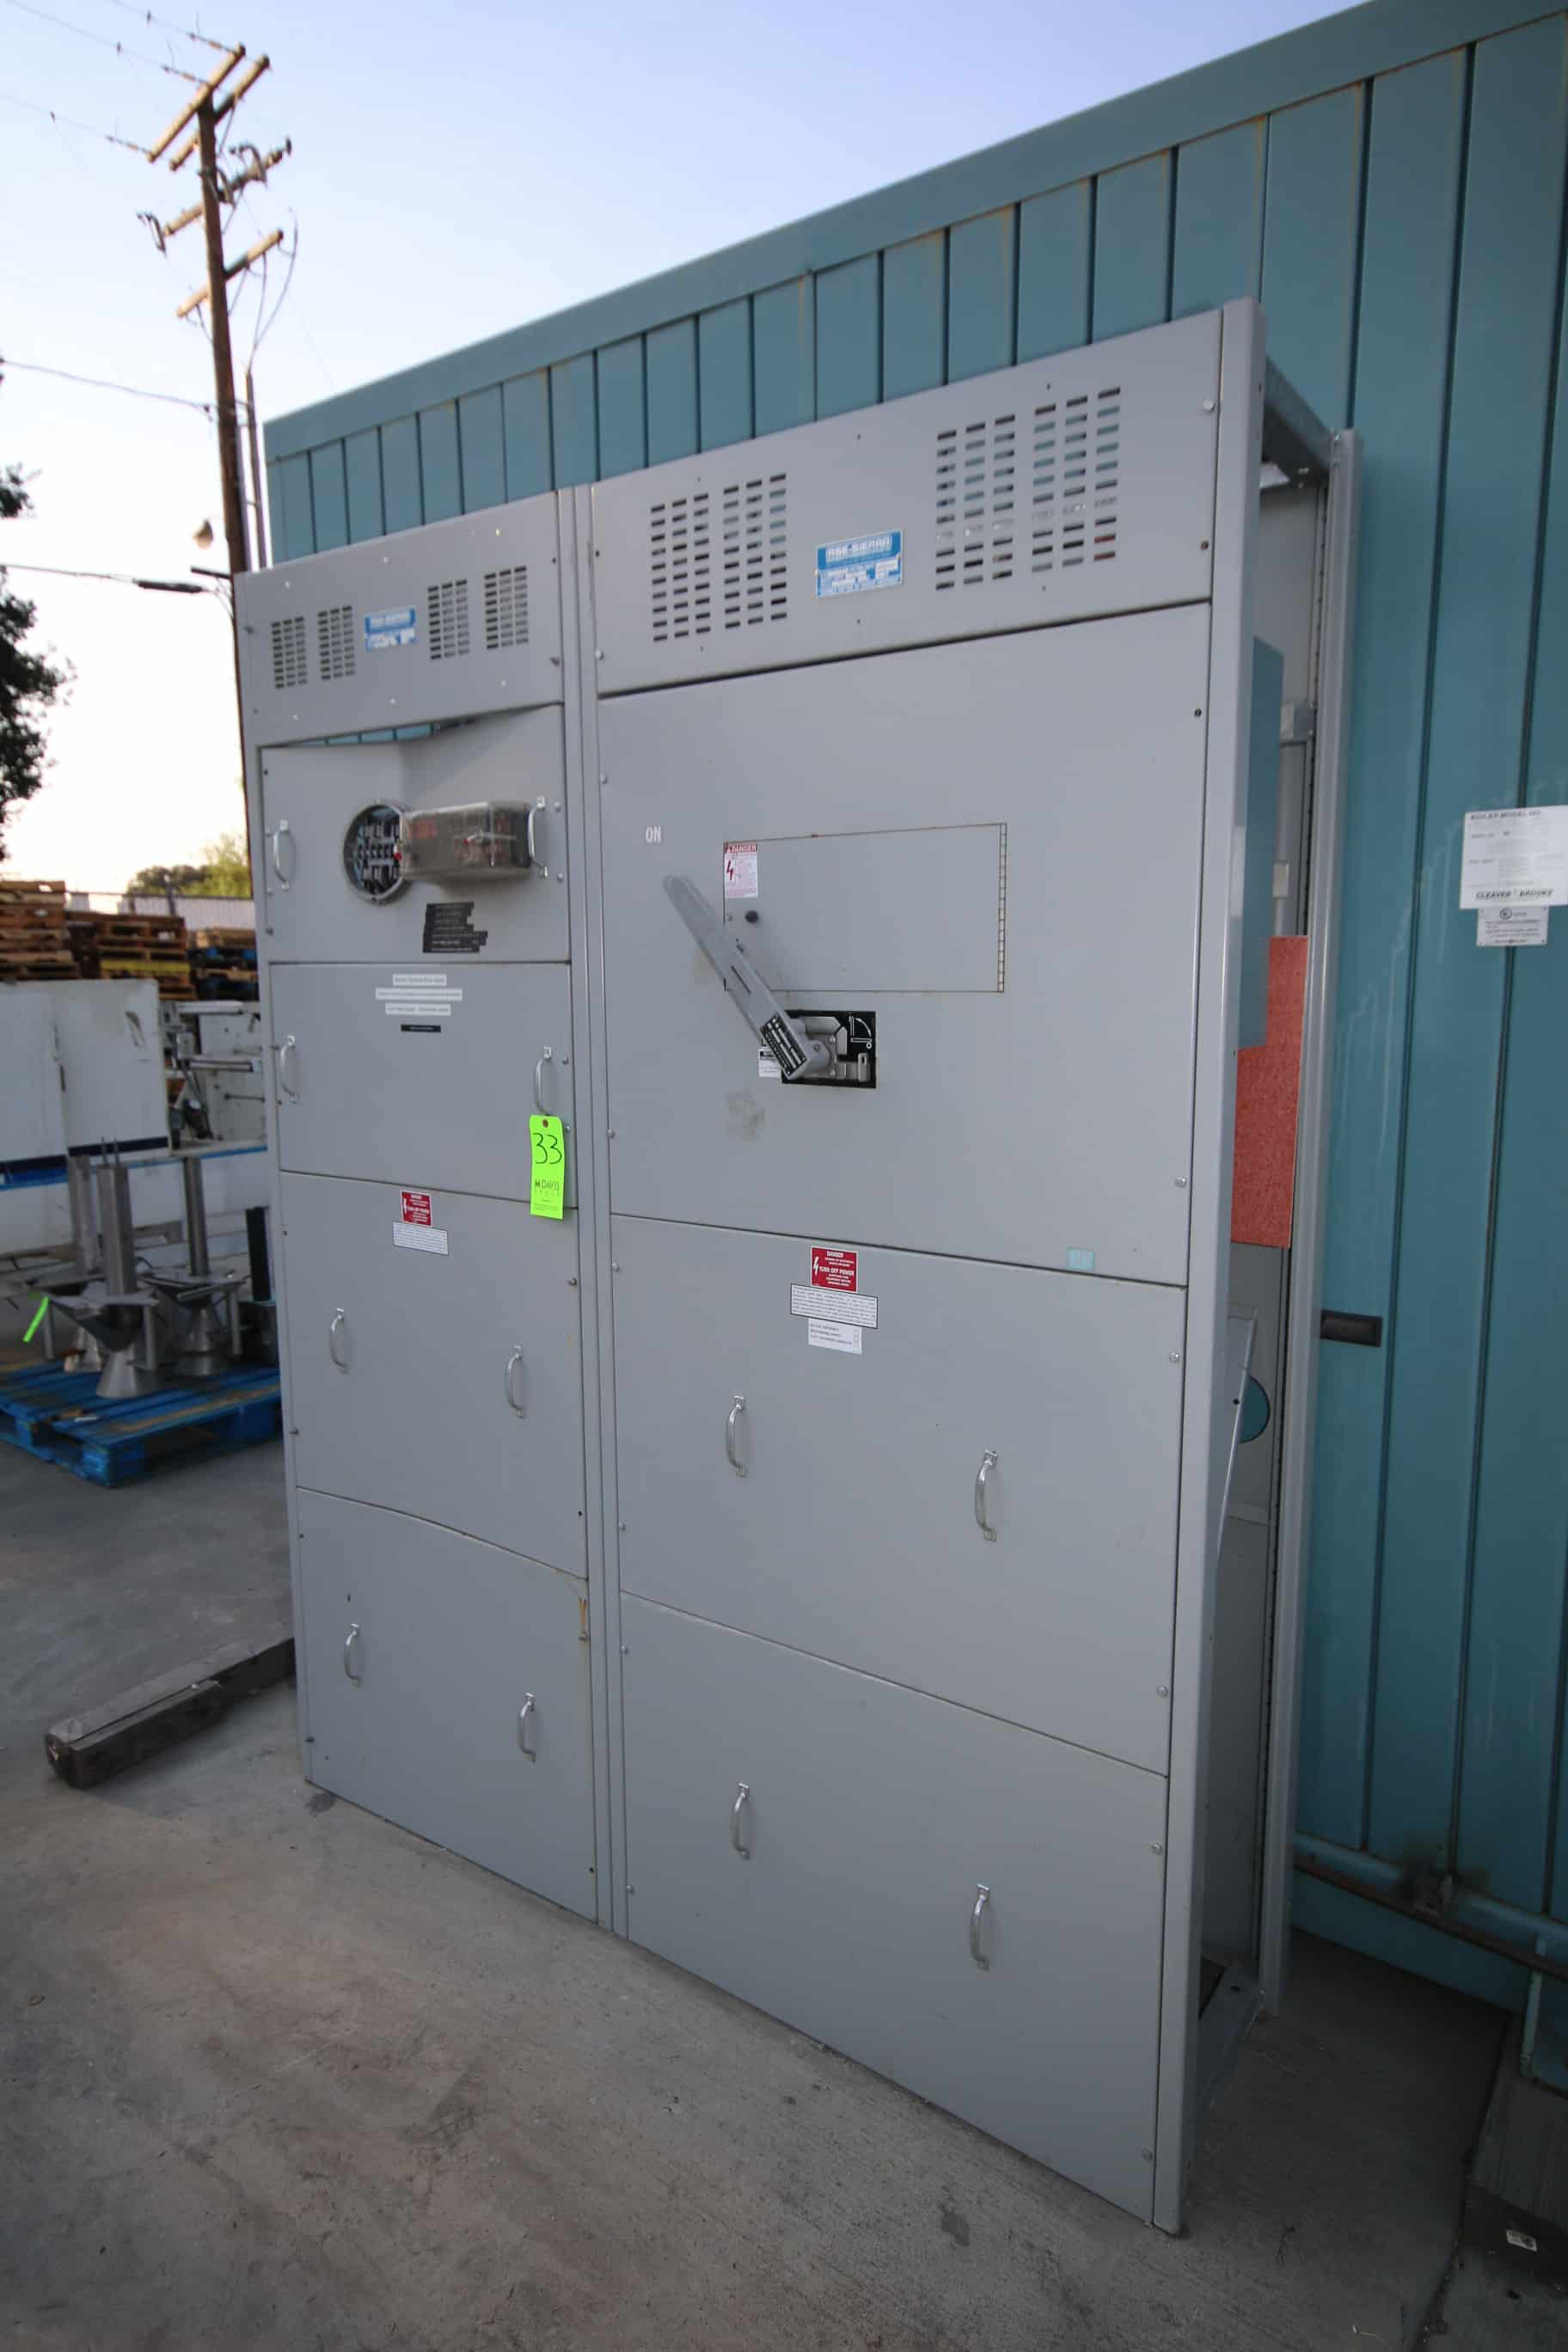 "RSE-SIERRA Switch Gear, 400 AMP Sections, 480Y/227 Volts, 23605-1 S.O., Overall Dims.:  Aprox. 70"" L x 20"" w x 90"" H"